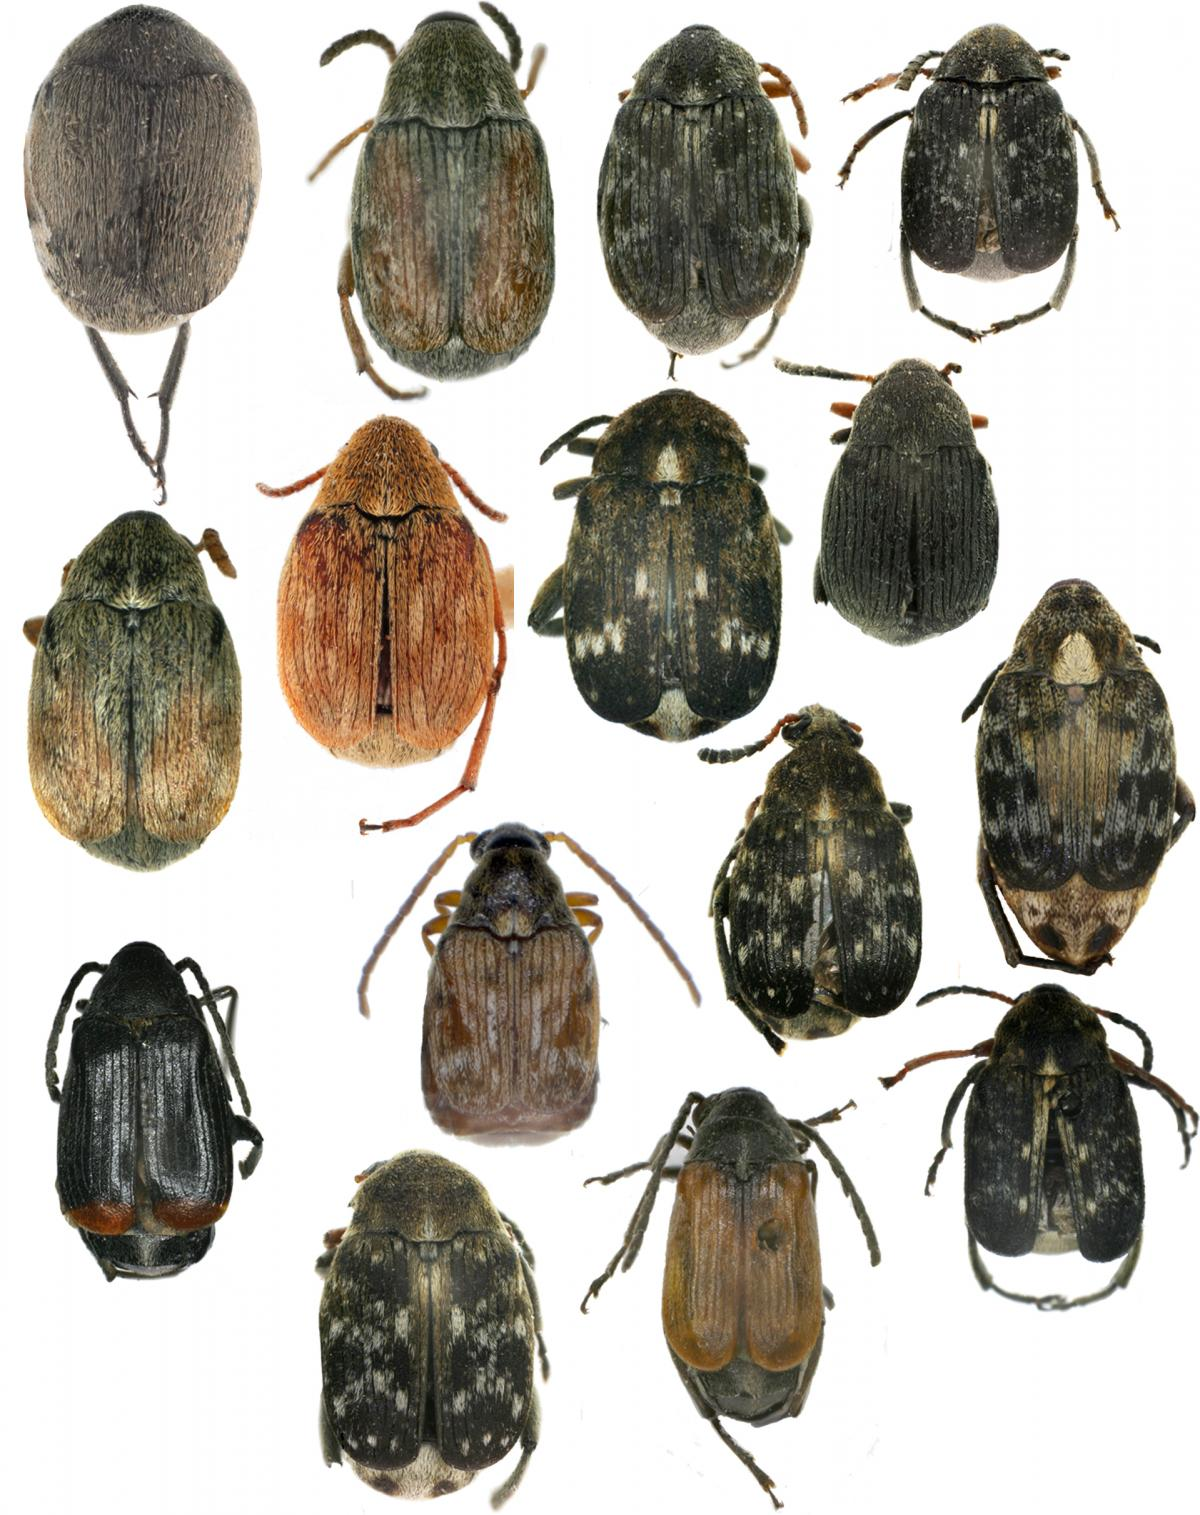 diversification in beetles Species delimitation and diversification history in rhinoceros beetles: how many and why so many species.